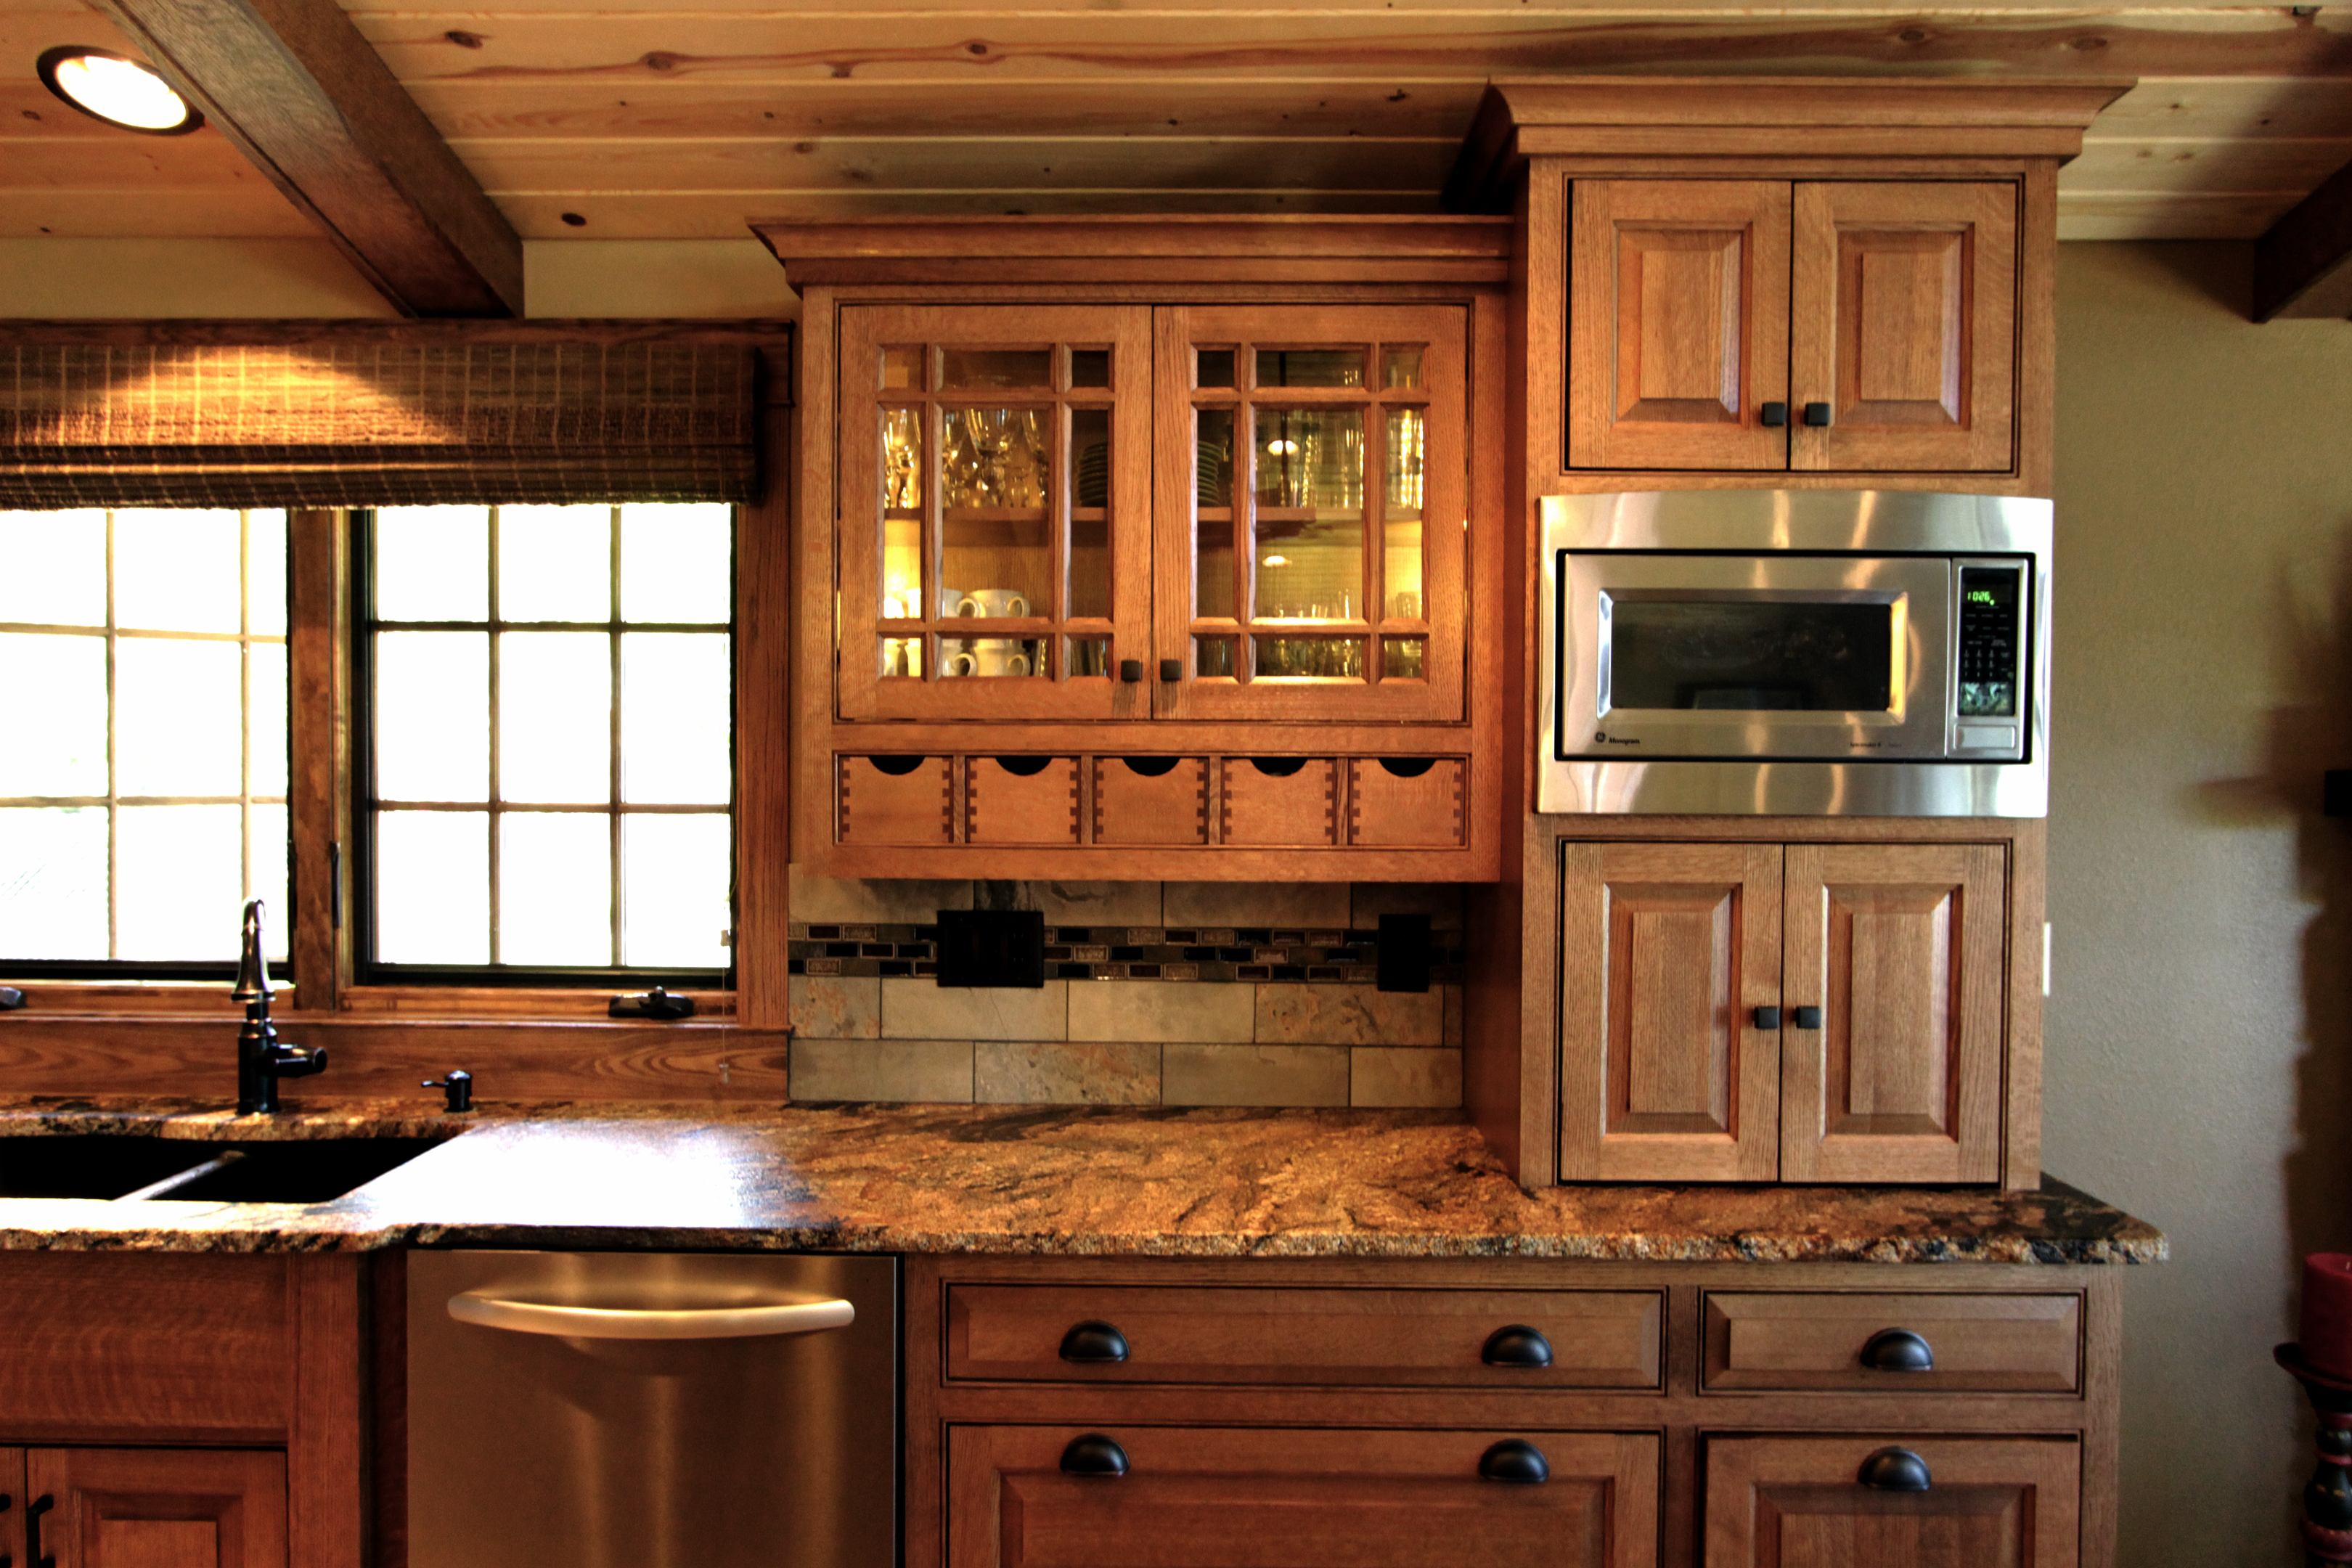 Quarter Sawn Oak Kitchen Cabinet Doors